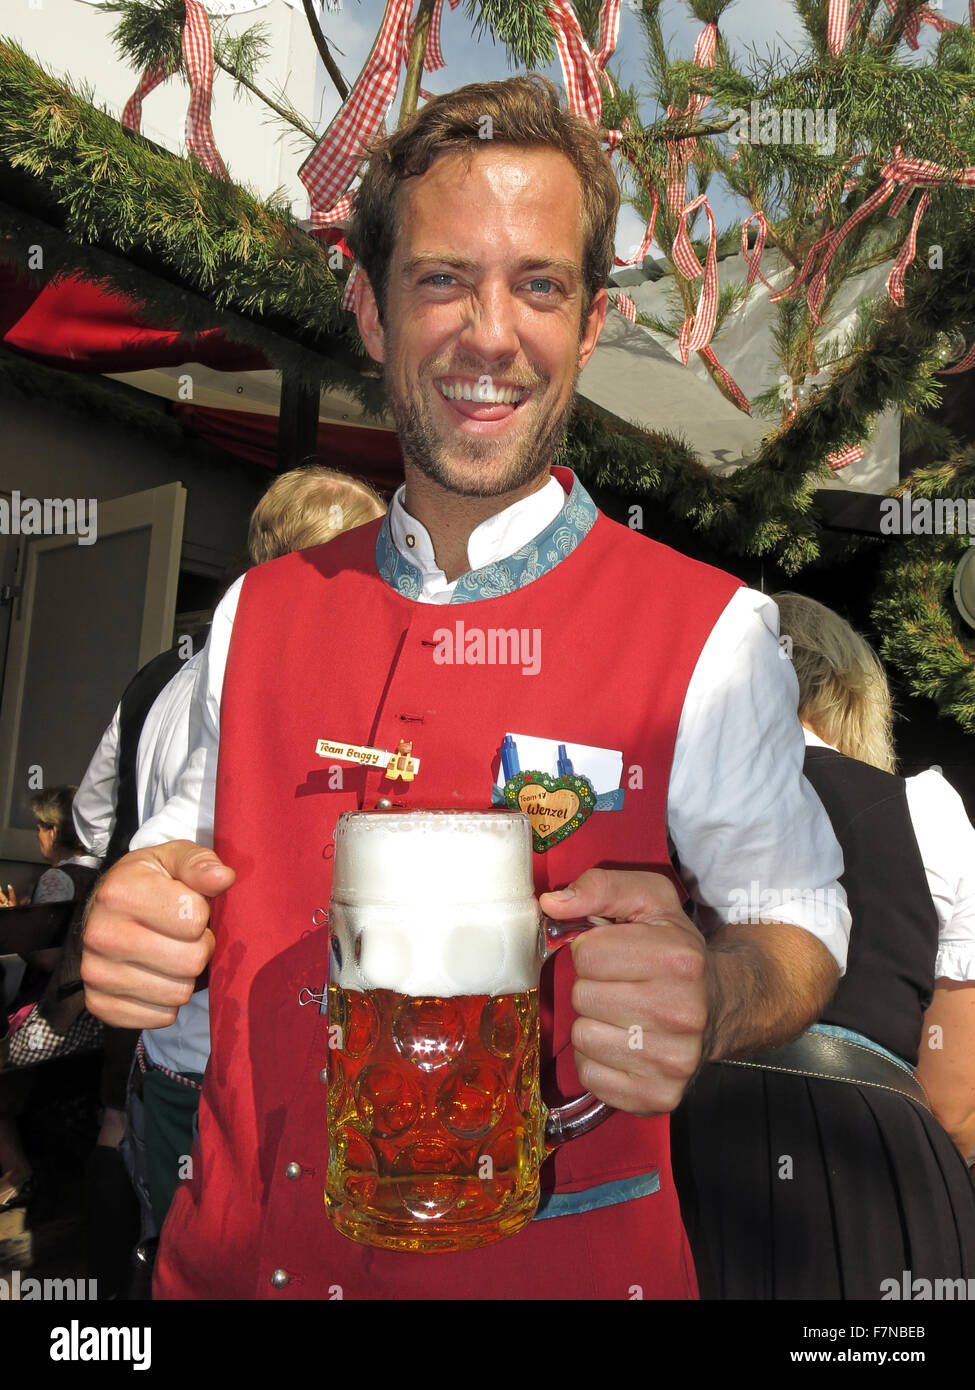 Oktoberfest server with lager bier stein, Munich,Germany Stock Photo